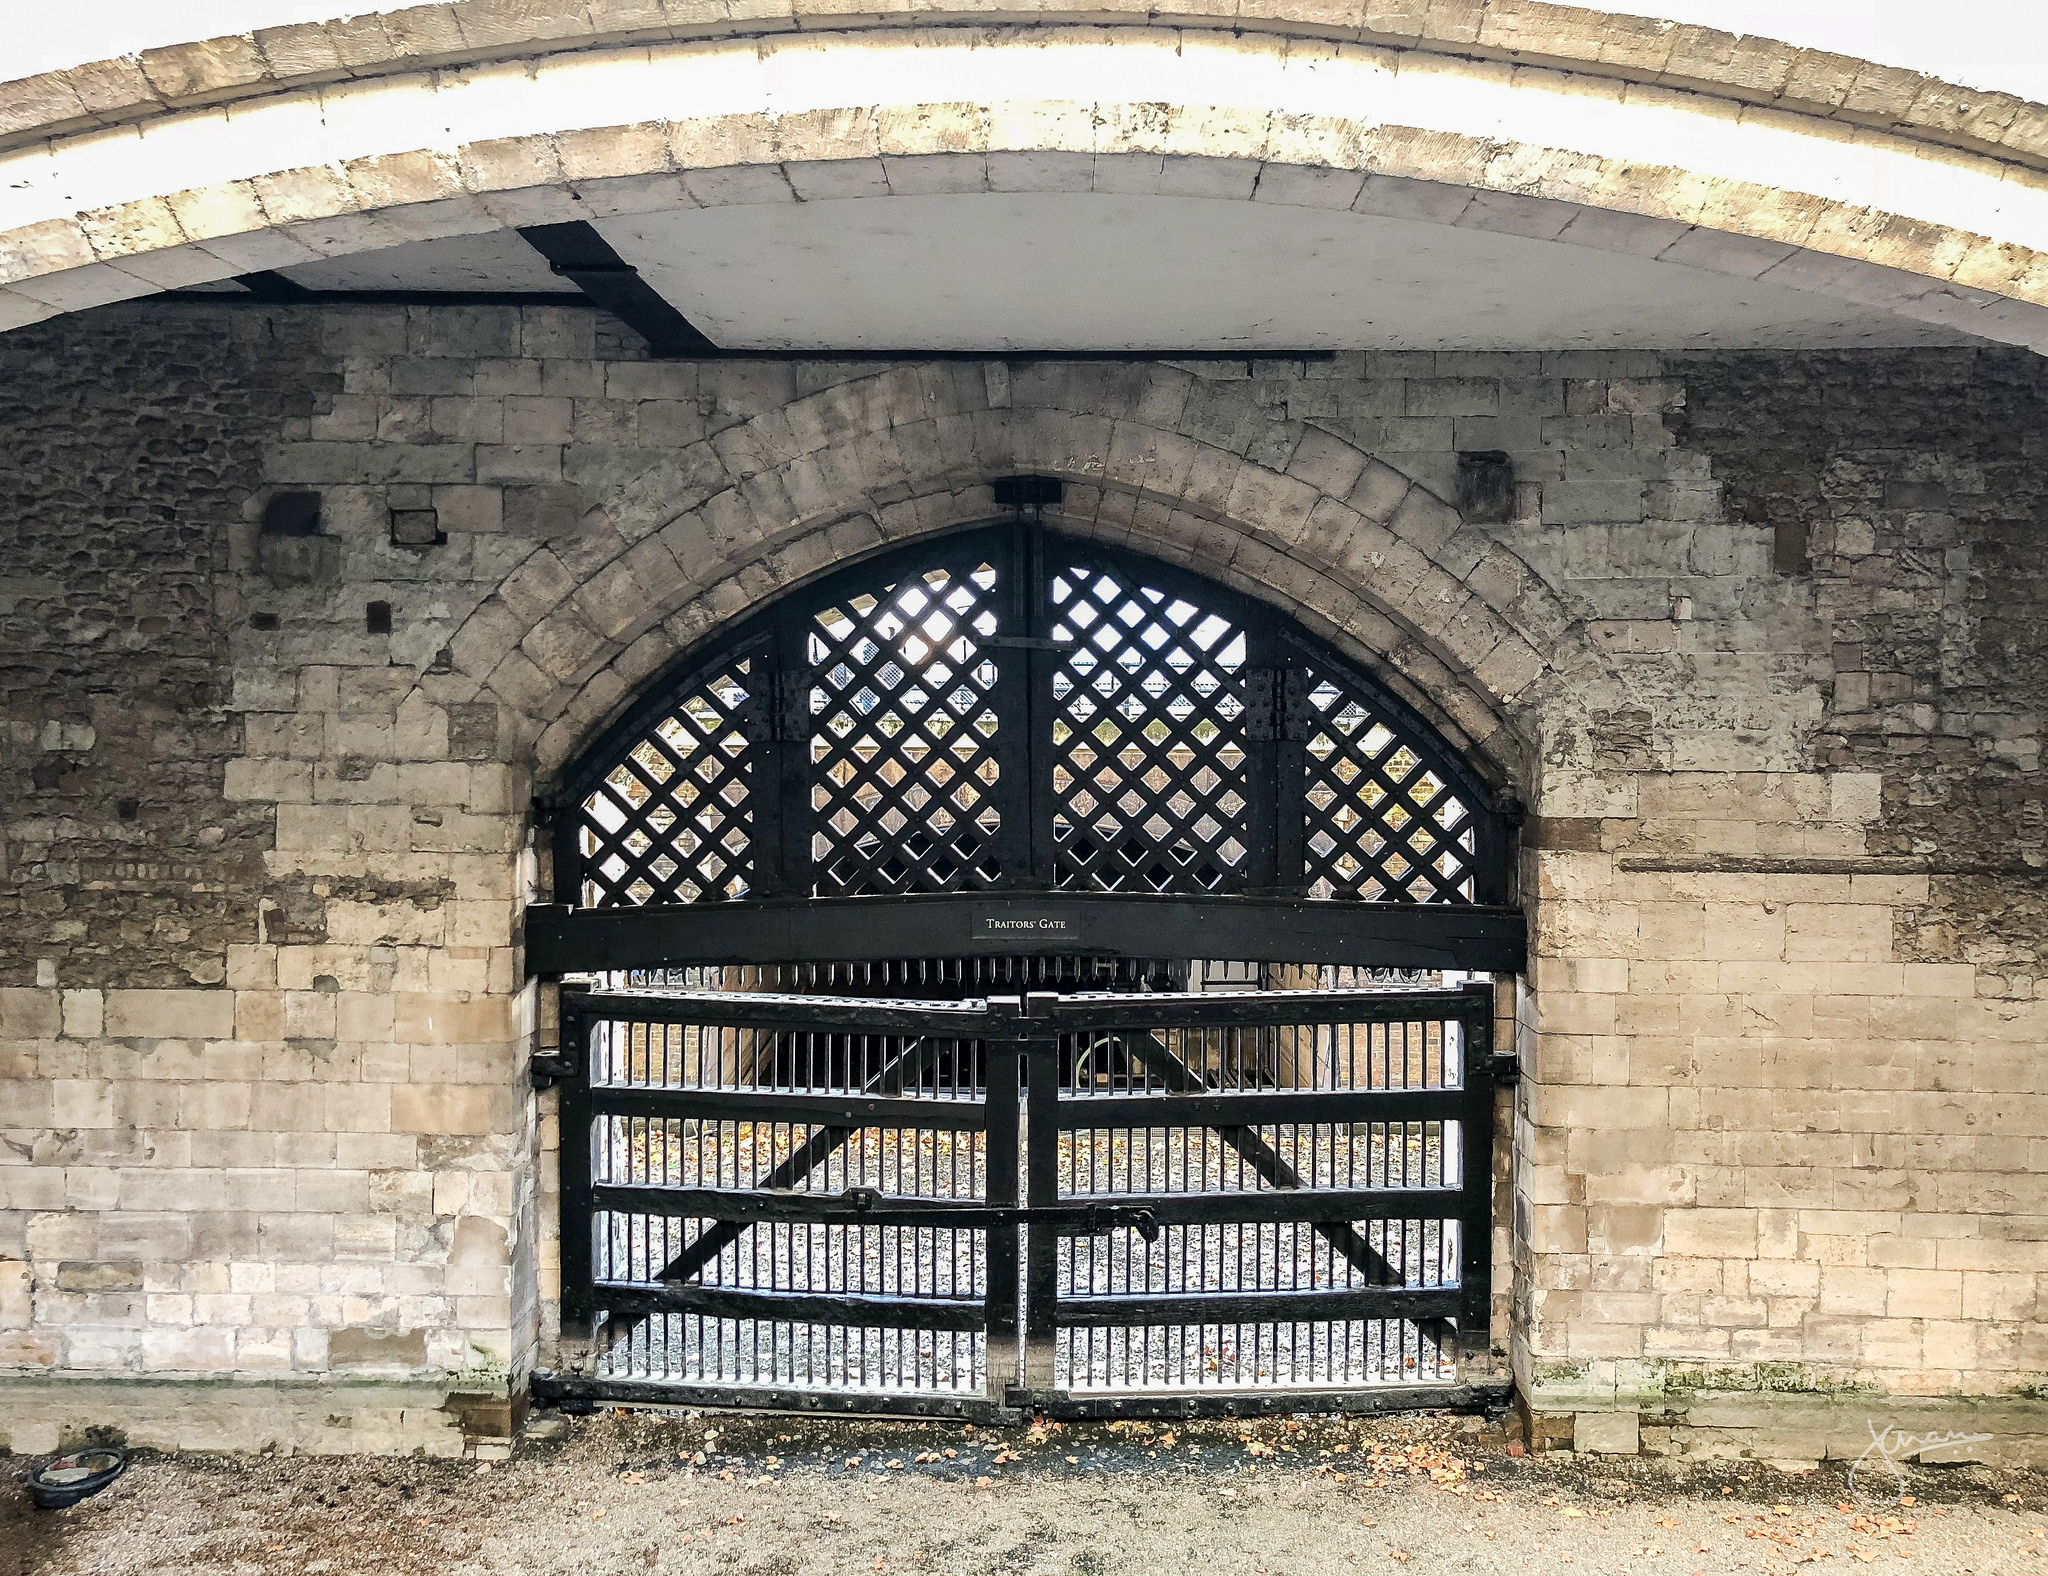 Traitor Gate